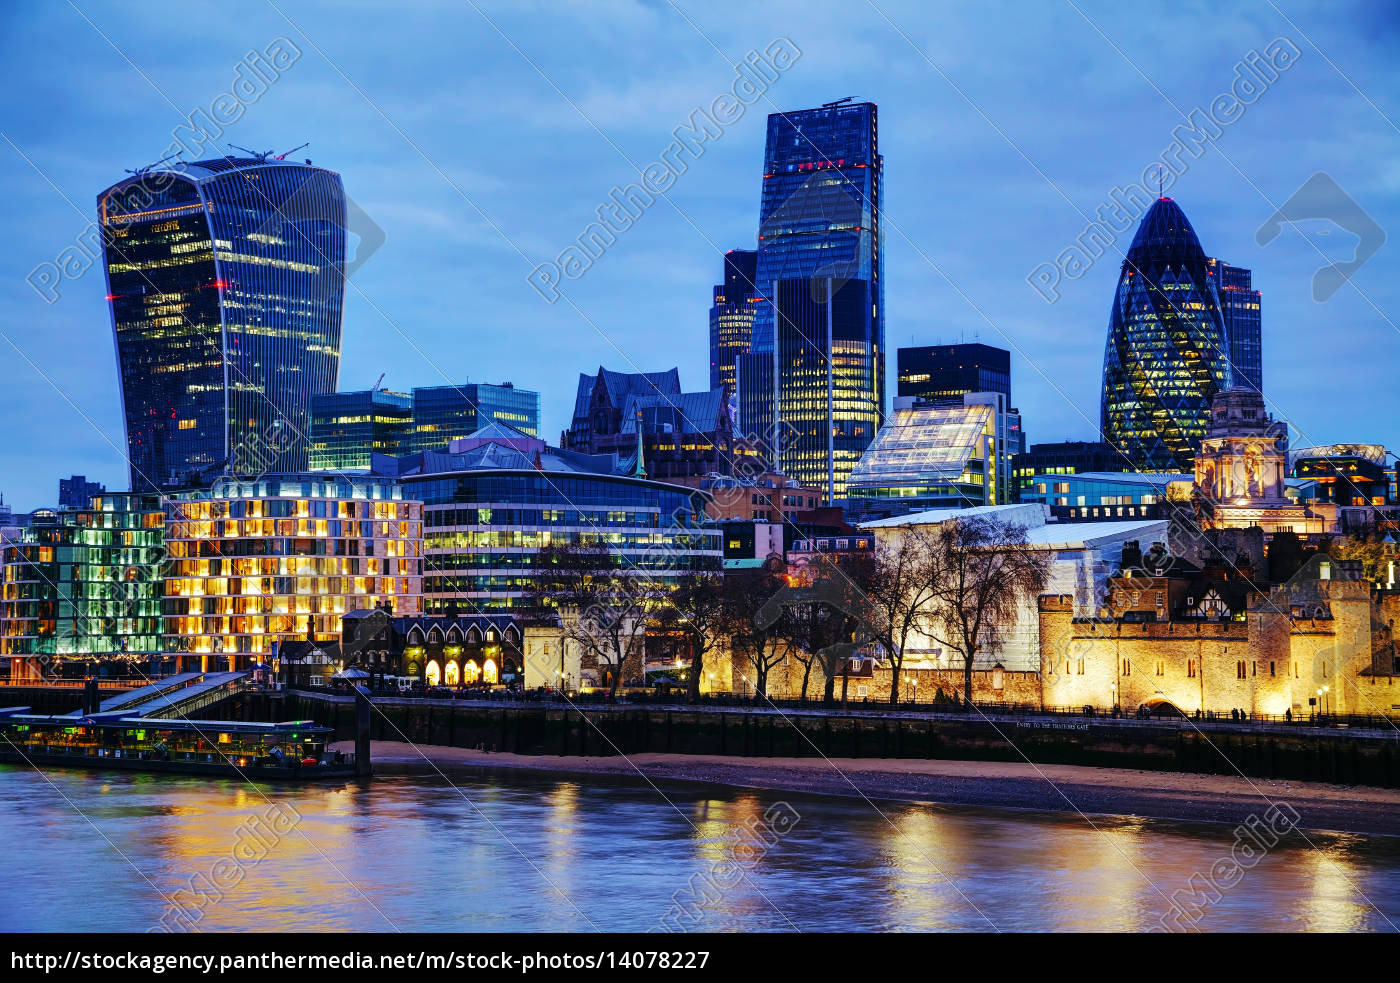 london, city, at, the, night, time - 14078227